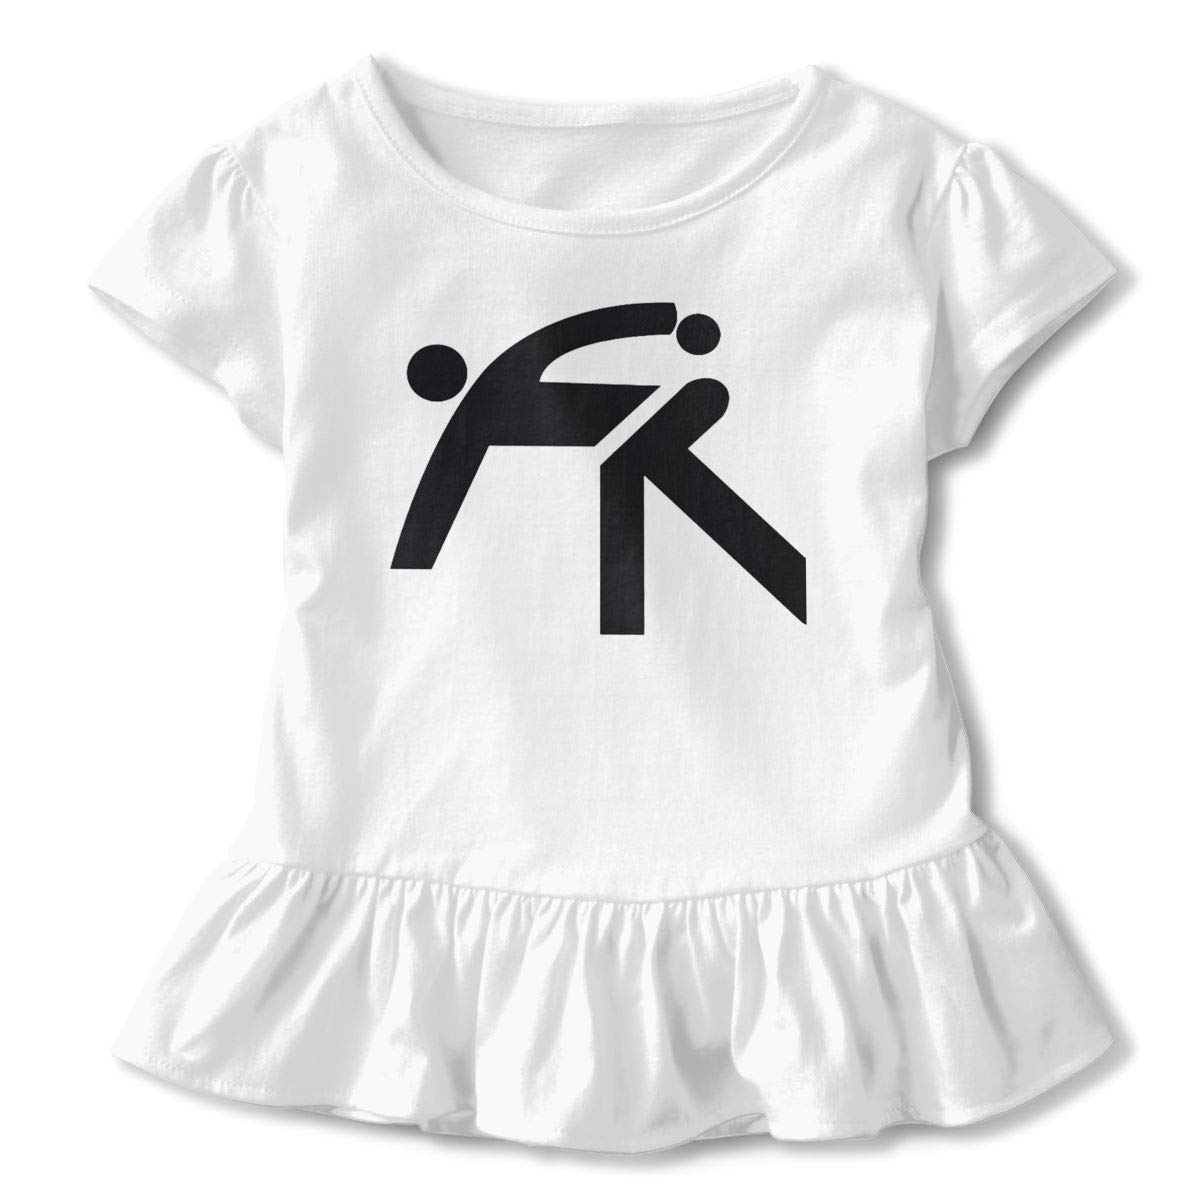 Cropped Bowling Shirt Design Baby Girl Flounced T Shirts Tops for 2-6T Baby Girls